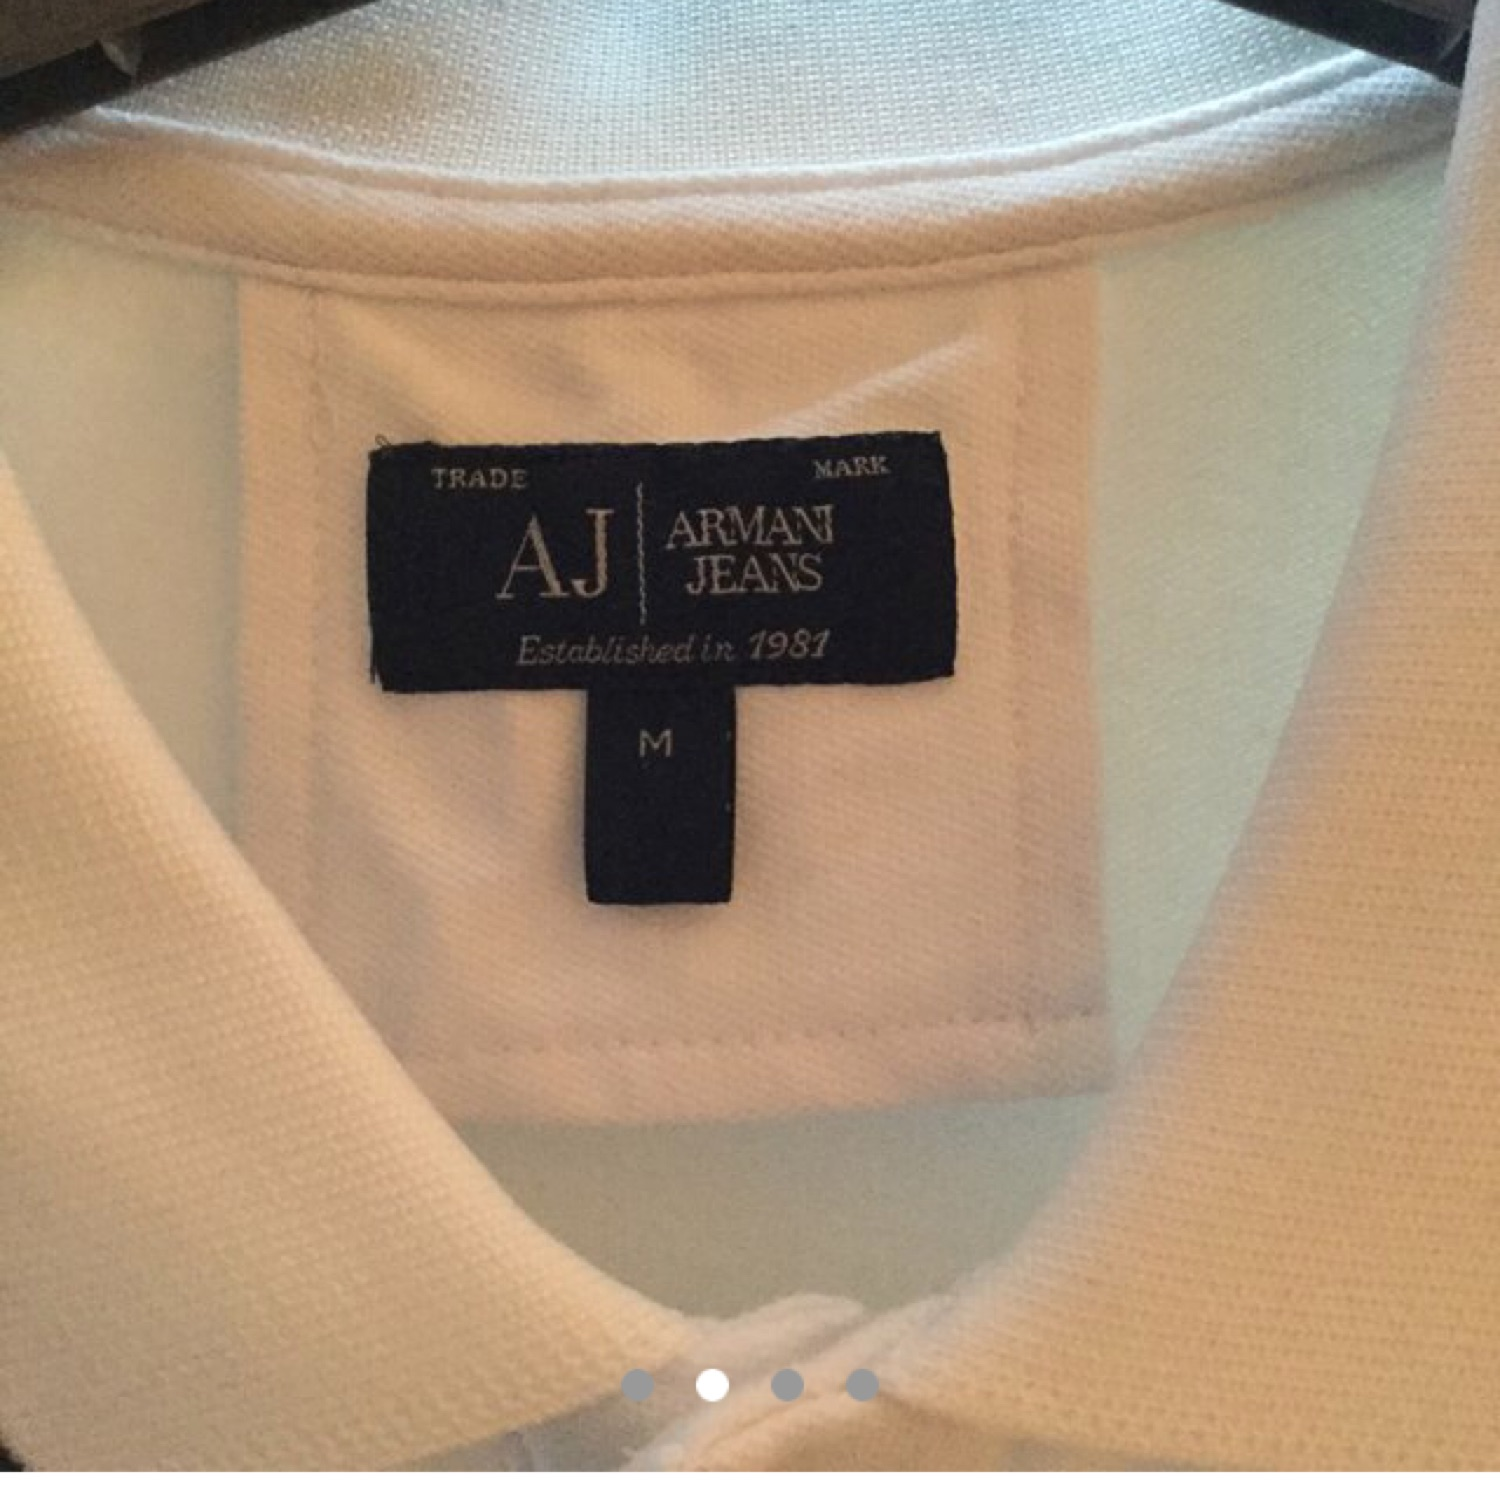 bb8889bb Genuine Emporio Armani Jeans Aj Polo Shirt